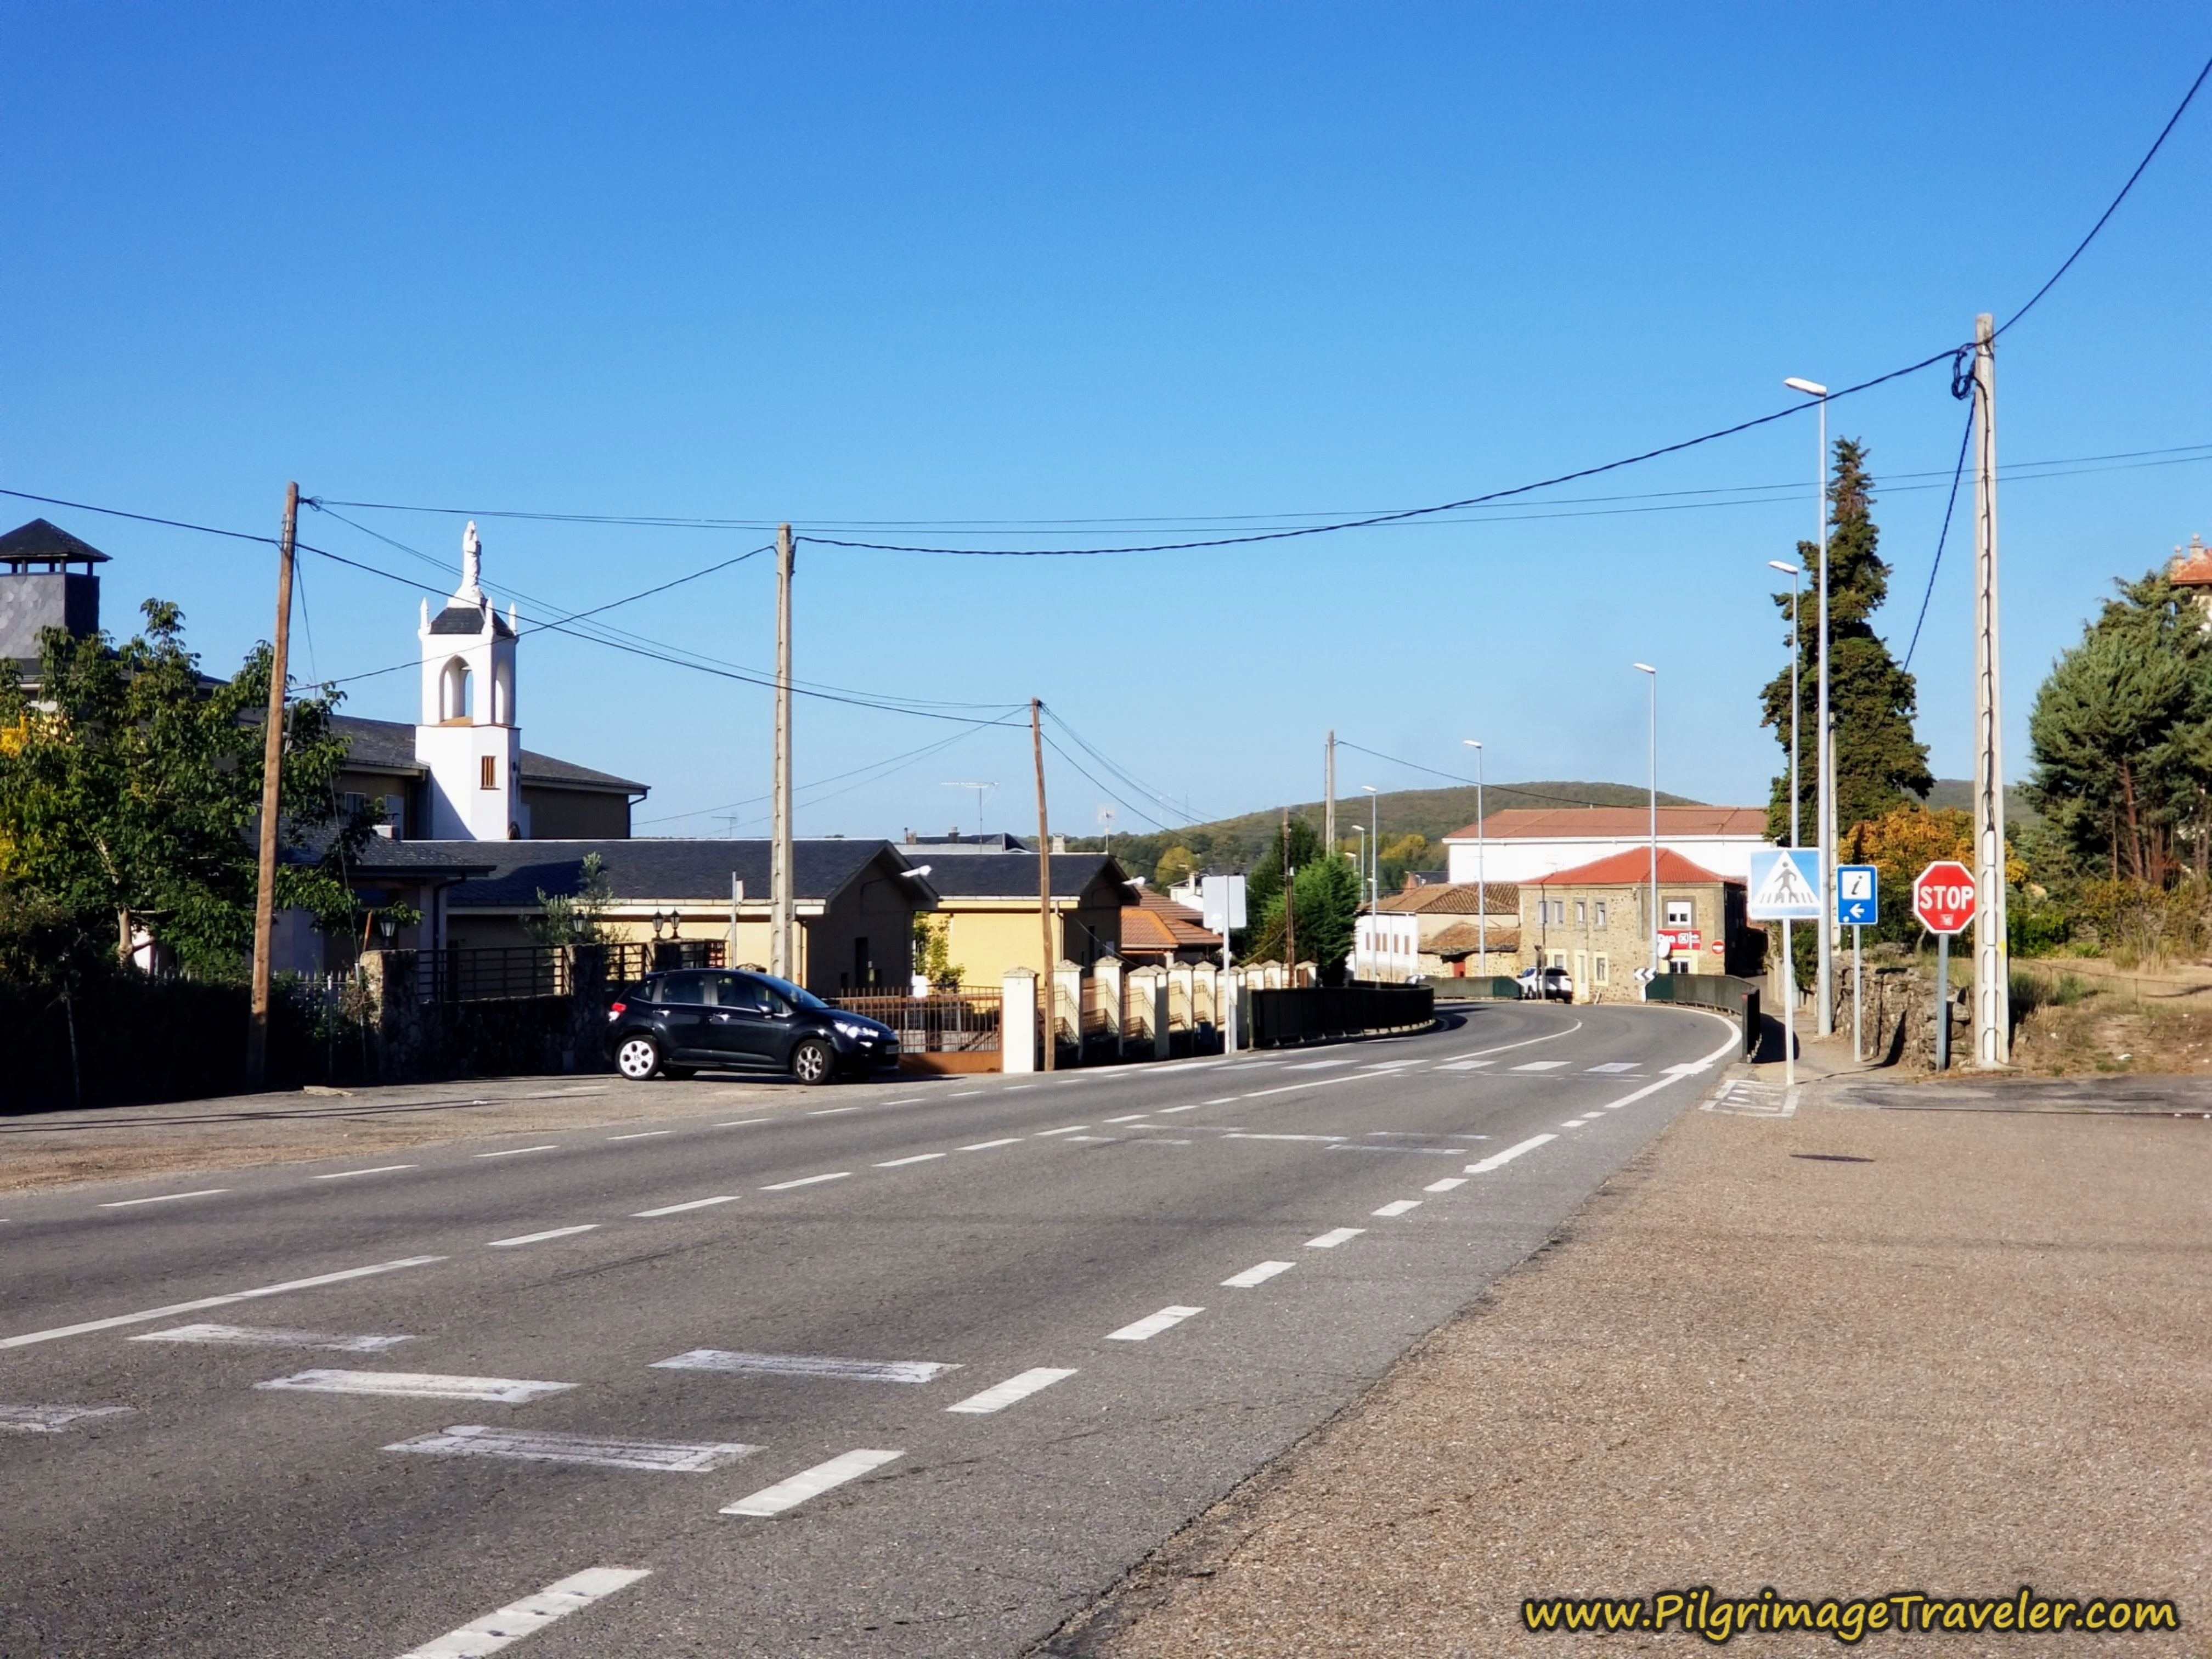 Entering the Center of Town on the Camino Sanabrés from Rionegro del Puente to Entrepeñas